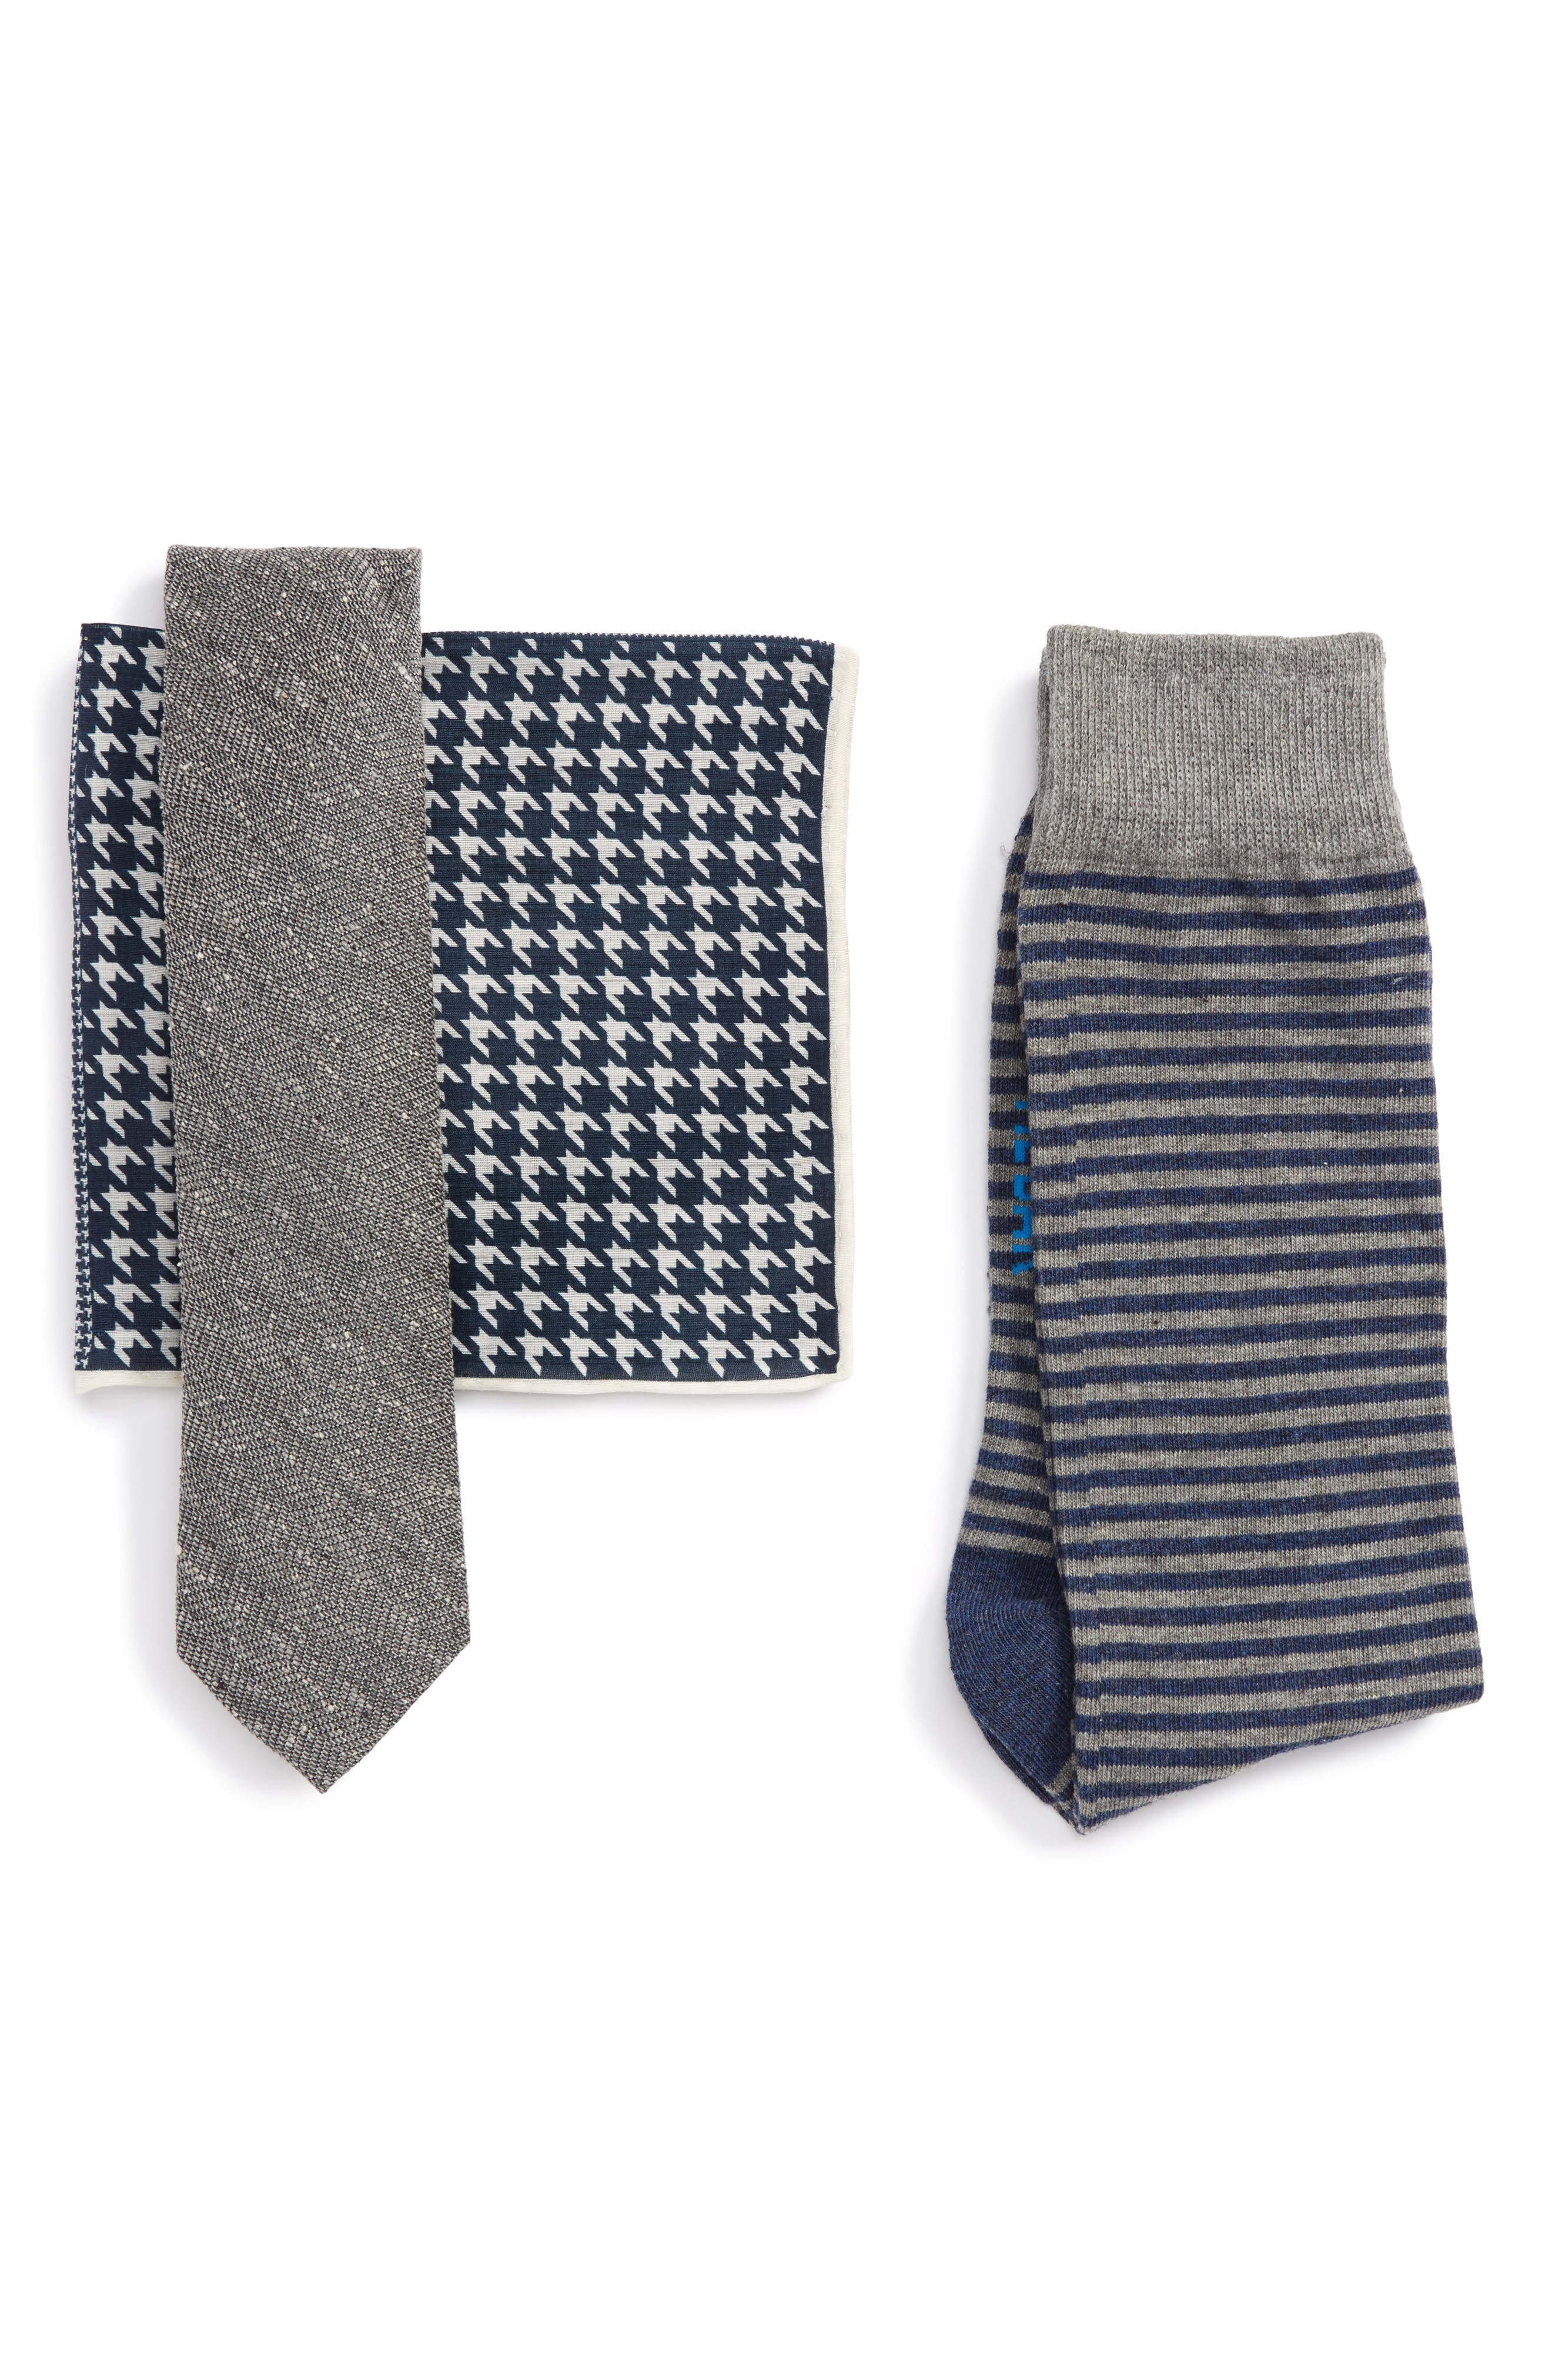 The Tie Bar Tie, Pocket Square & Sock Style Box